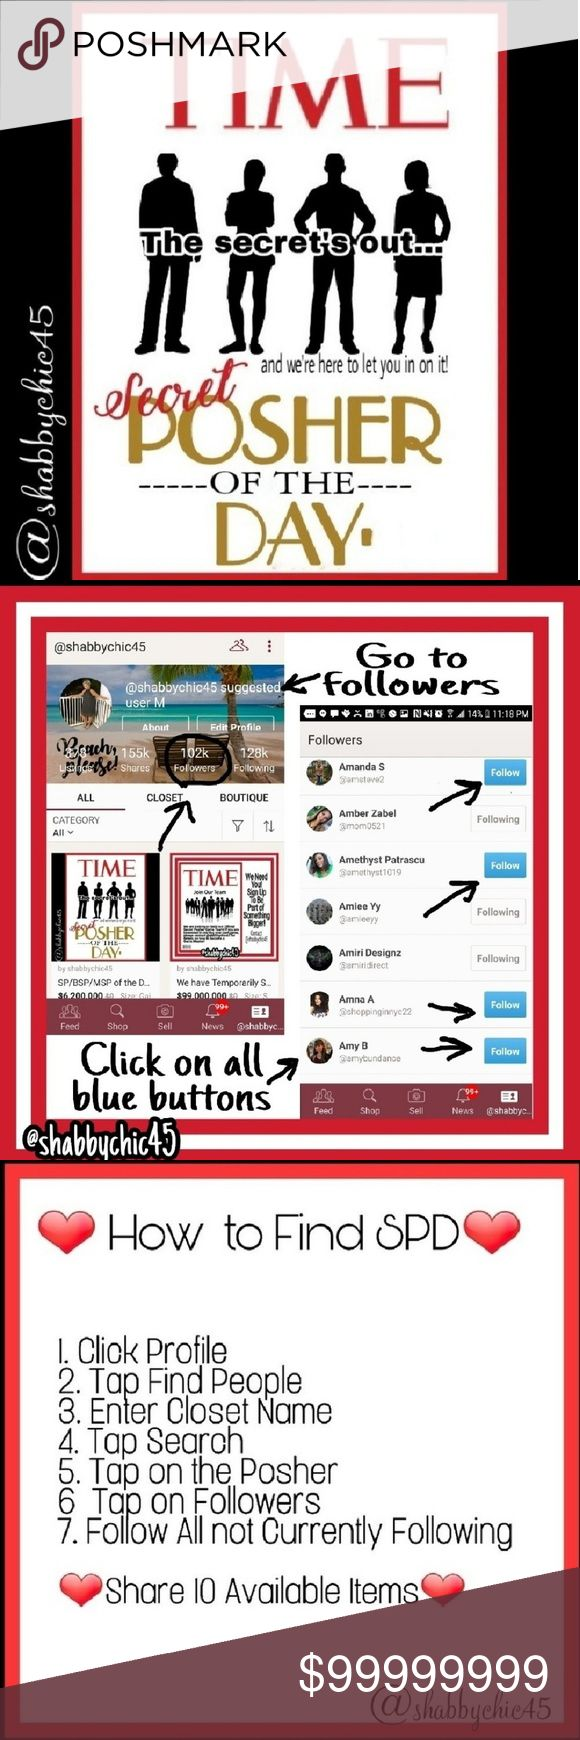 """NEW LISTING Secret/Bonus Posher Announced!! THE OFFICIAL SECRET POSHER GAME!! GAIN 200+ FOLLOWERS A DAY!!!  Follow the """"FOLLOWERS"""" of the SP chosen daily.  Using @freddiesfind SP, my own BSP, and a Mystery SP for even larger follower gains!   IF YOU WISH TO BE THE BSP~COMMENT """"I CAN KEEP A SECRET!"""" ONLY TAG ONCE!  11/17 SP is @herparallax BSP i@cassiecw BSP is @petitezero Secret Posher of the Day Accessories"""